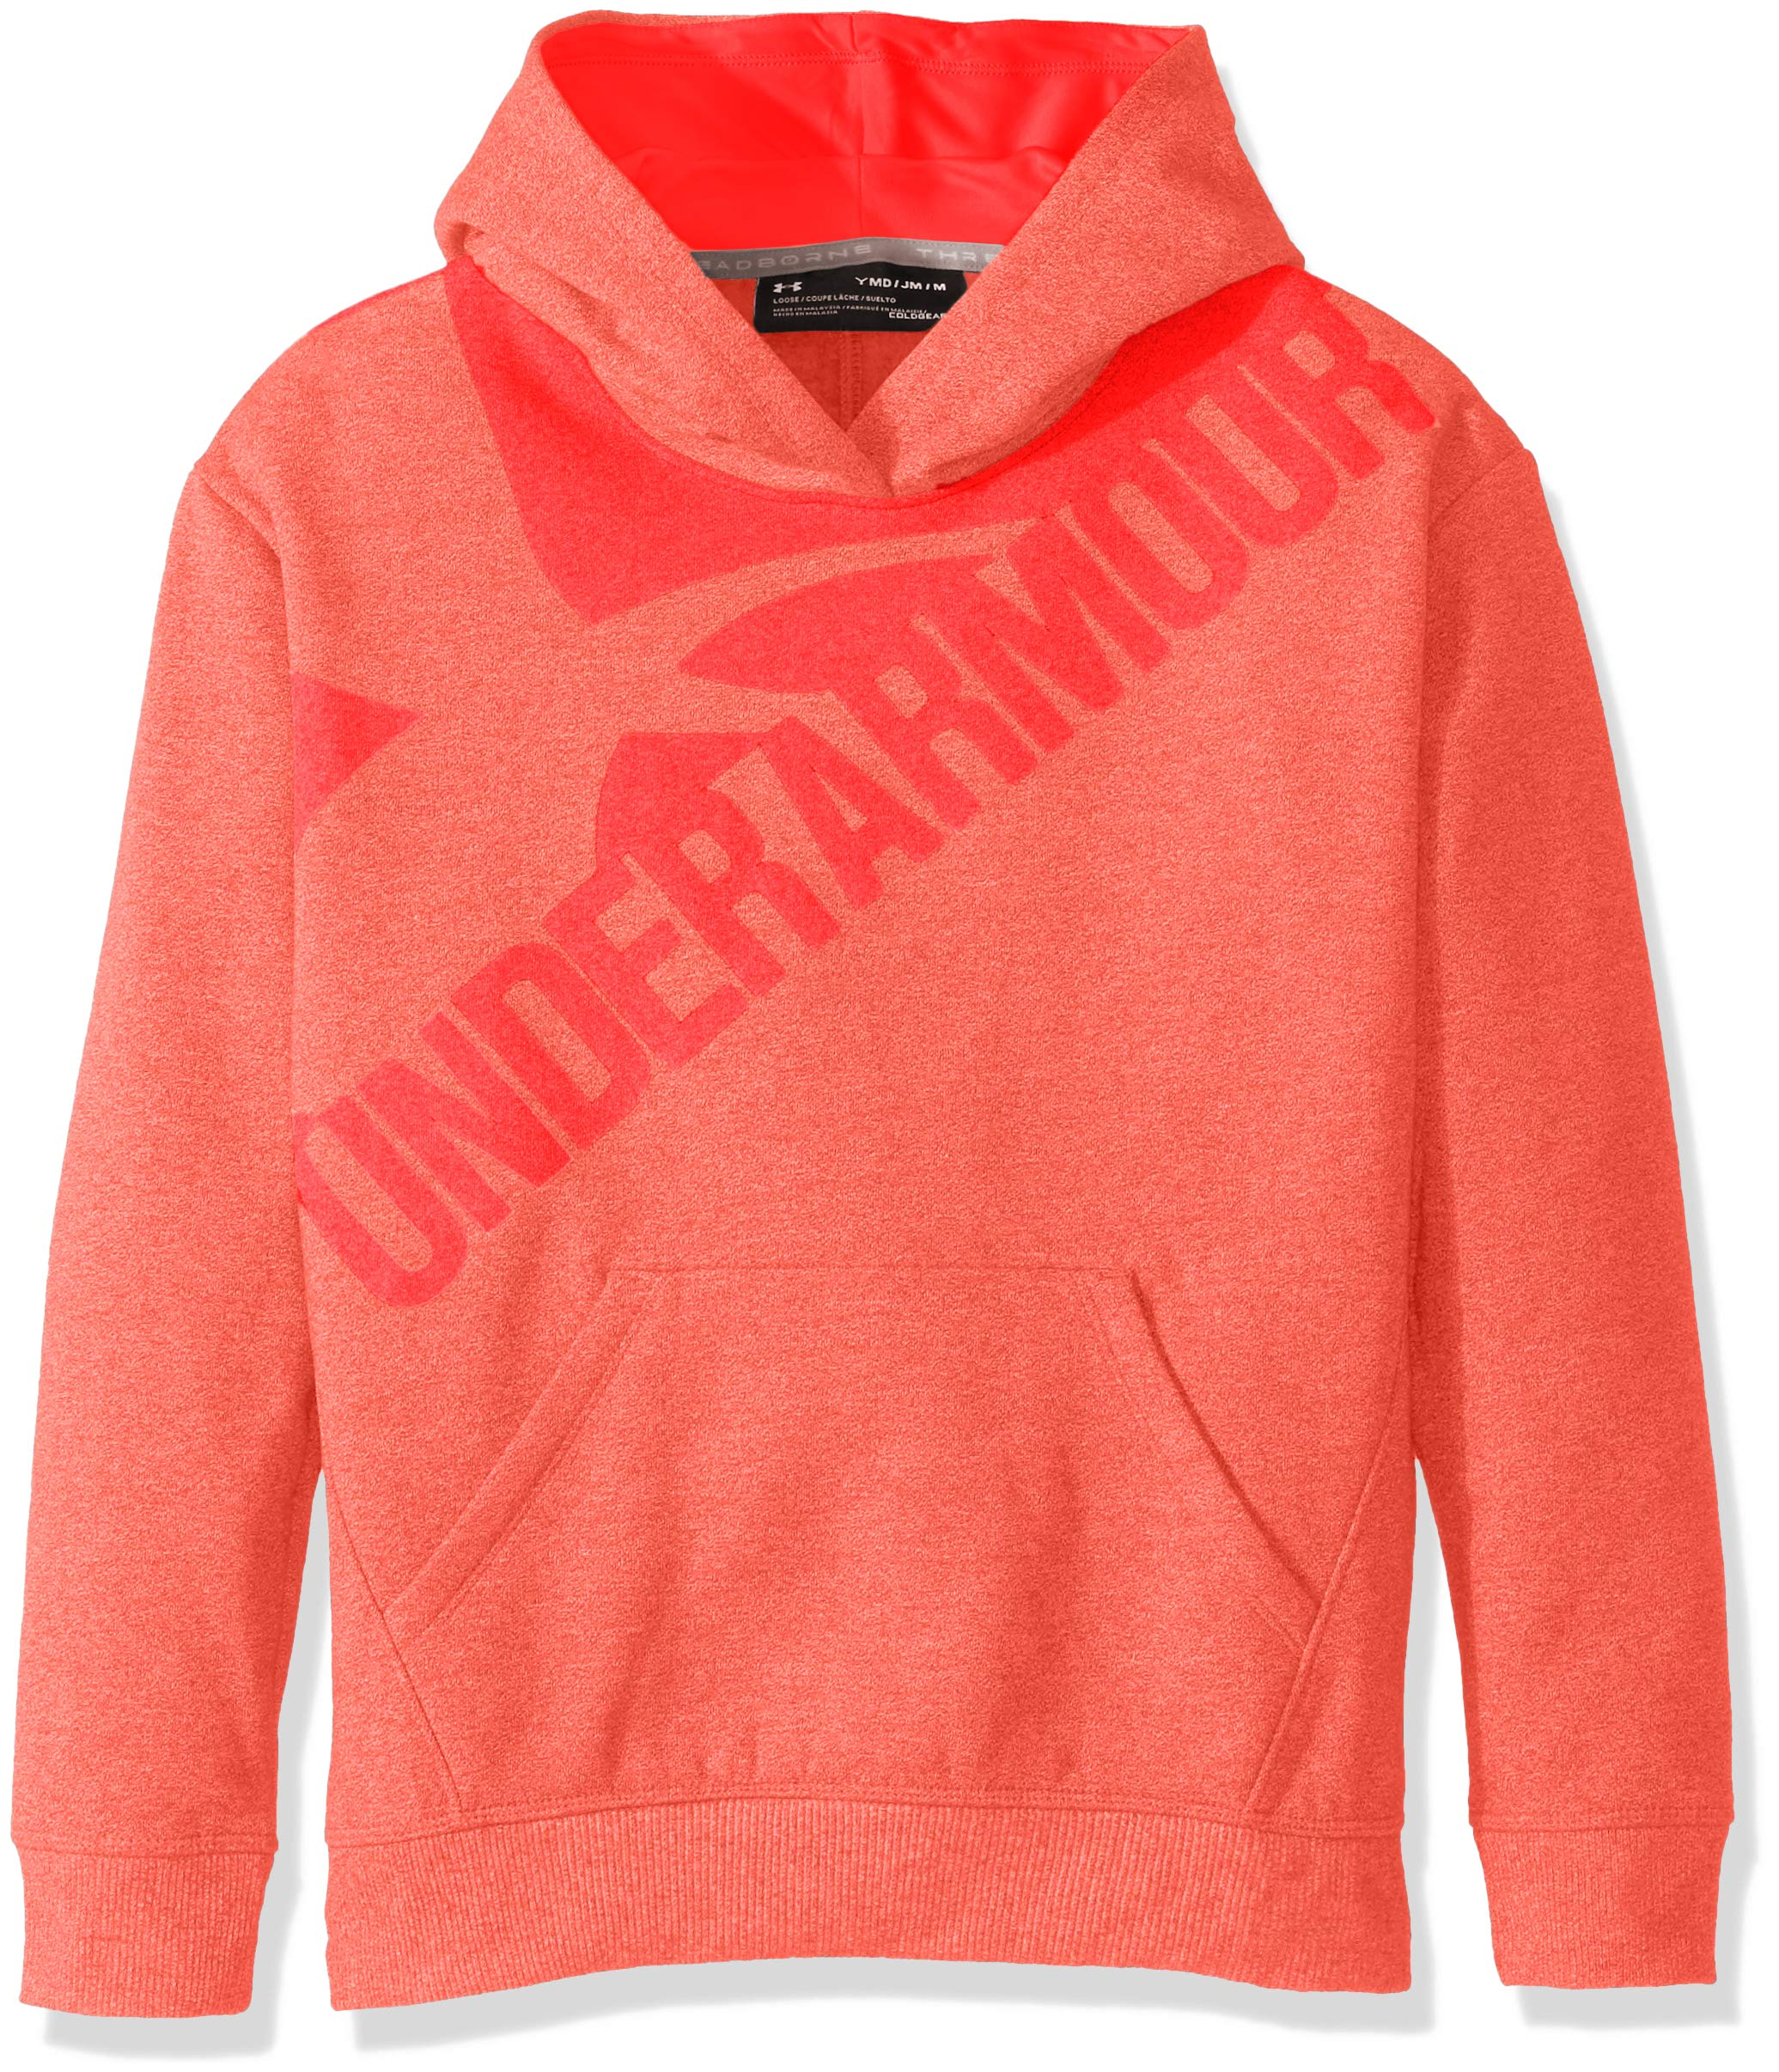 Under Armour Girls' Threadborne Novelty Fleece Hoodie,Marathon Red /Marathon Red, Youth Small